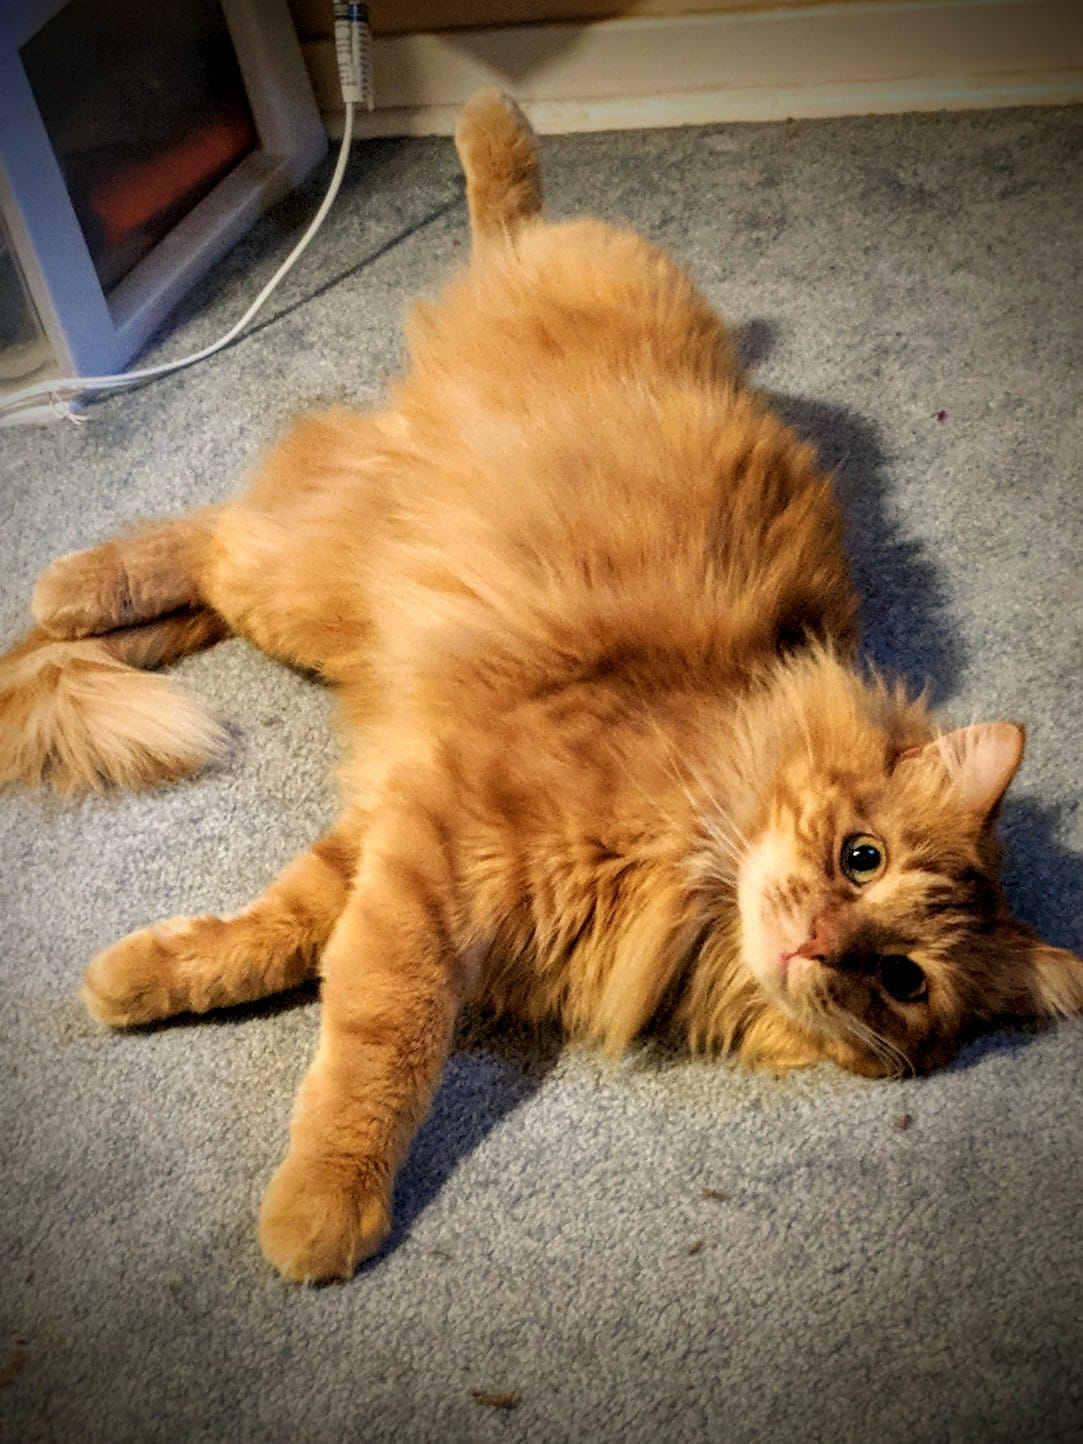 Pictured: Noam Chompsky, arguably the most adorable kitty. -